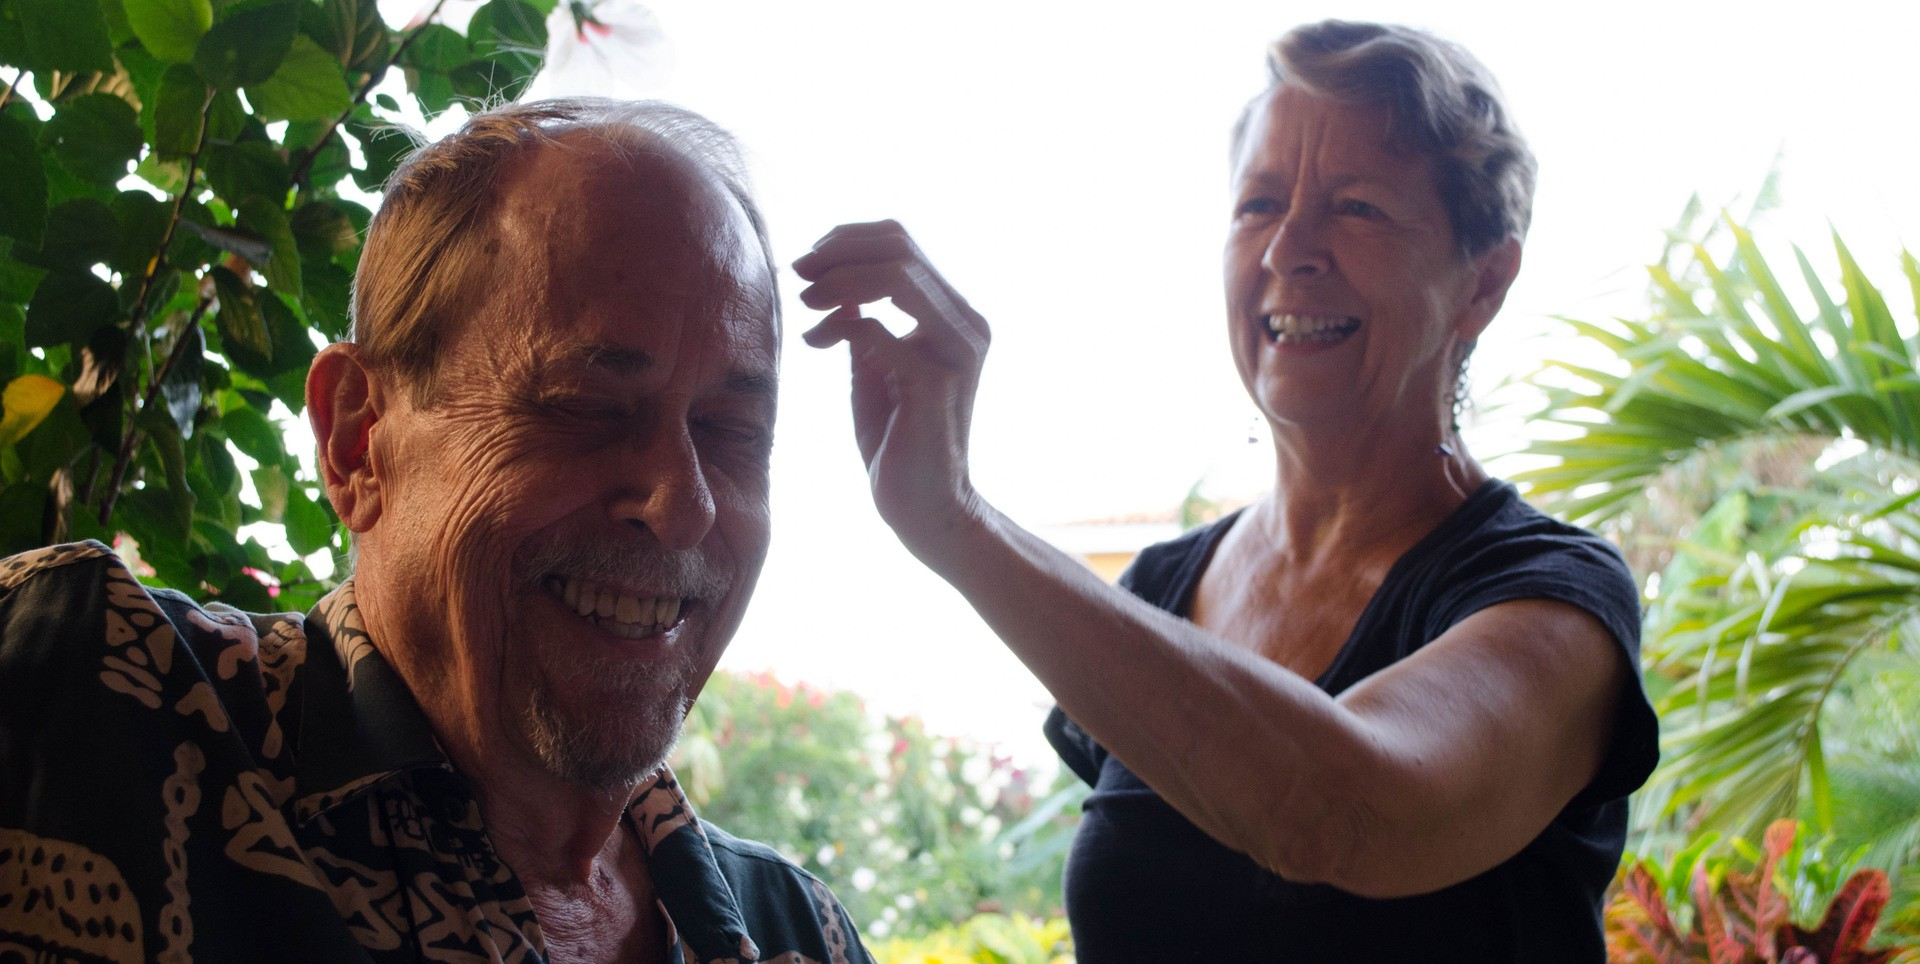 Carol Lynch fixes her husband Jim's hair in their backyard in Granada, Nicaragua. The Lynches are American expatriates who moved to Nicaragua in 2010. (Photo by Amanda LaCasse)